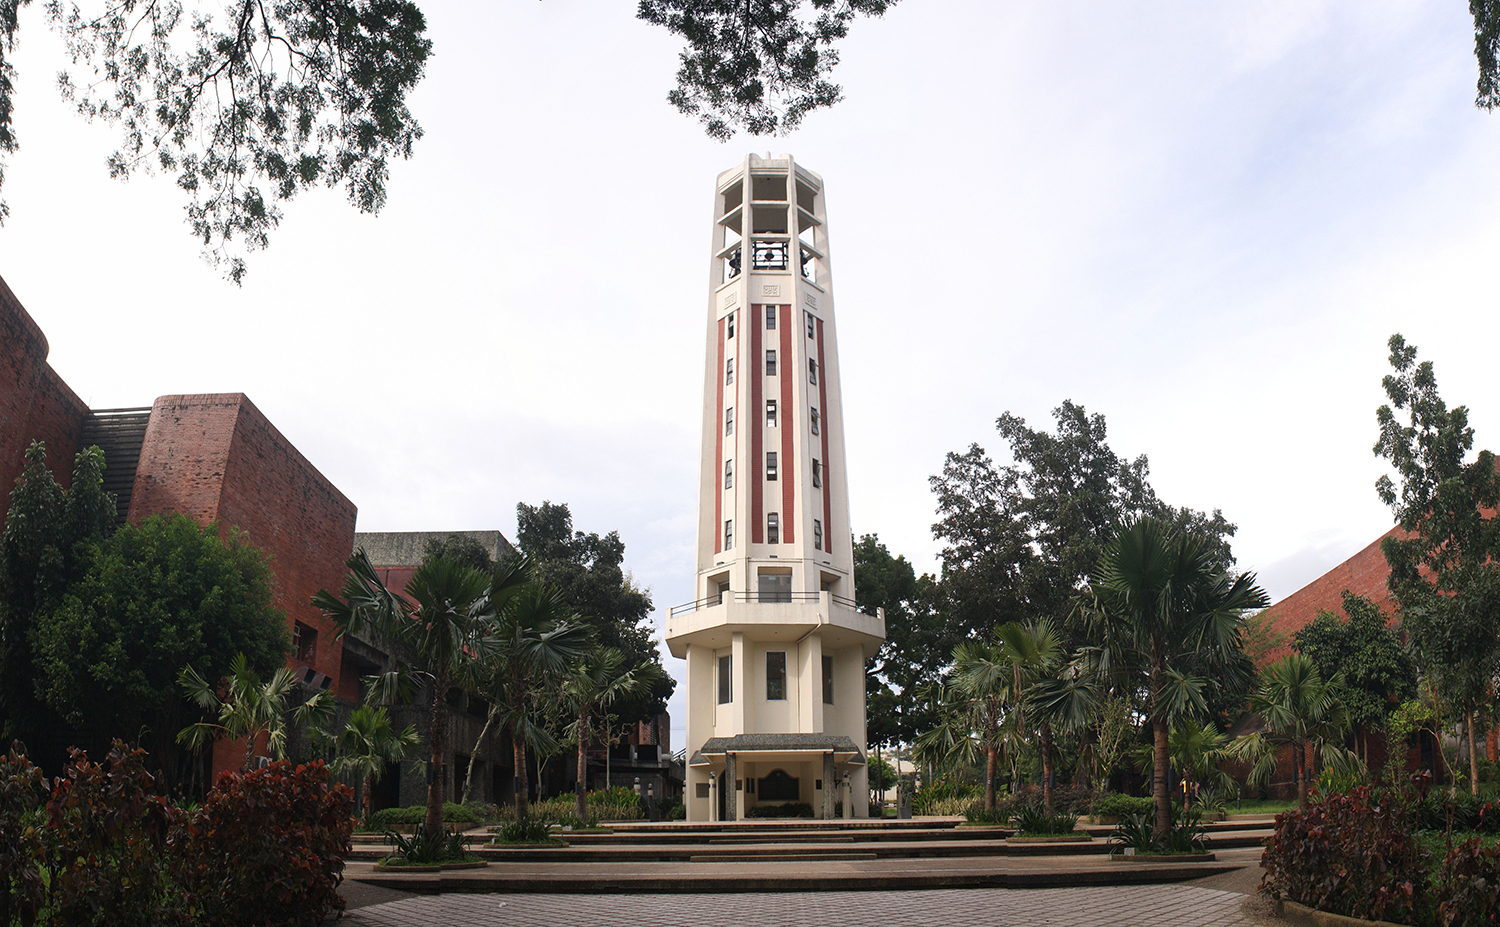 The Carillon at the University of the Philippines (UP). Palomar was able to talk down a suicidal suspect who used to come from the same university as he did. Palomar's references to the music the Carillon made and other stories about UP calmed the suspect down.  (Source: Wikimedia Commons)